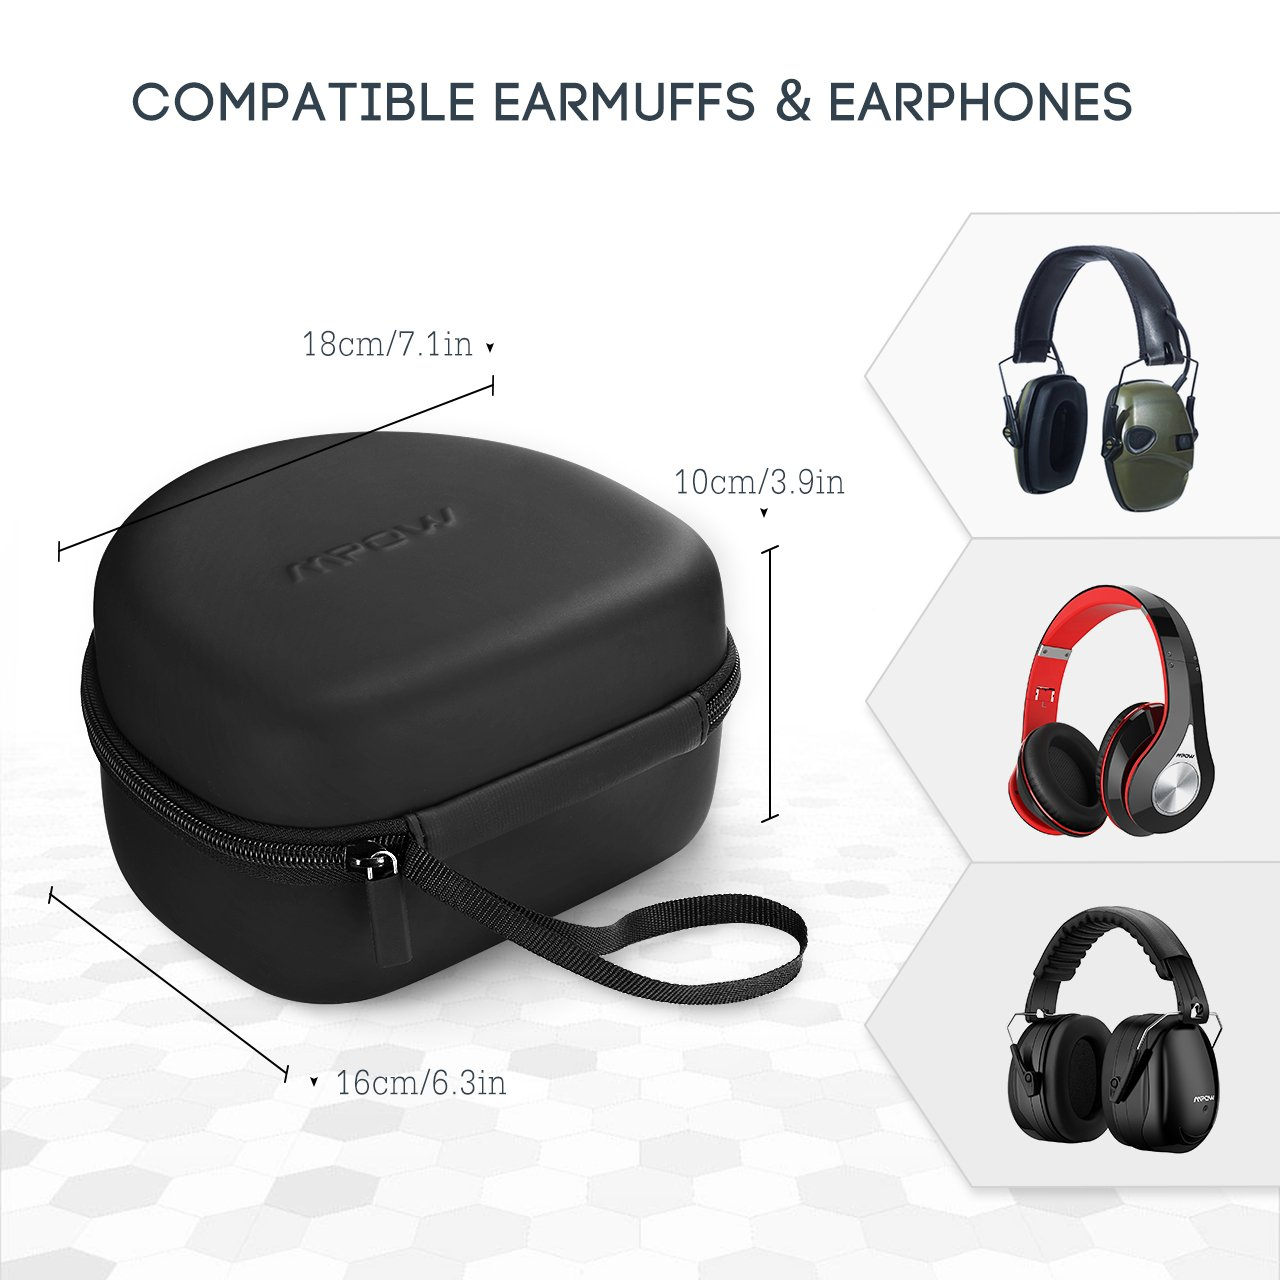 Mpow Earmuff Case for Mpow 035/068/108 Noise Reduction Safety Ear Muffs, Hard Travel Case EVA Hardshell for Mpow 059/H1/H2/H5 Foldable Headphone, Travel Carrying Case with Mesh Pocket for Accessories by Mpow (Image #6)